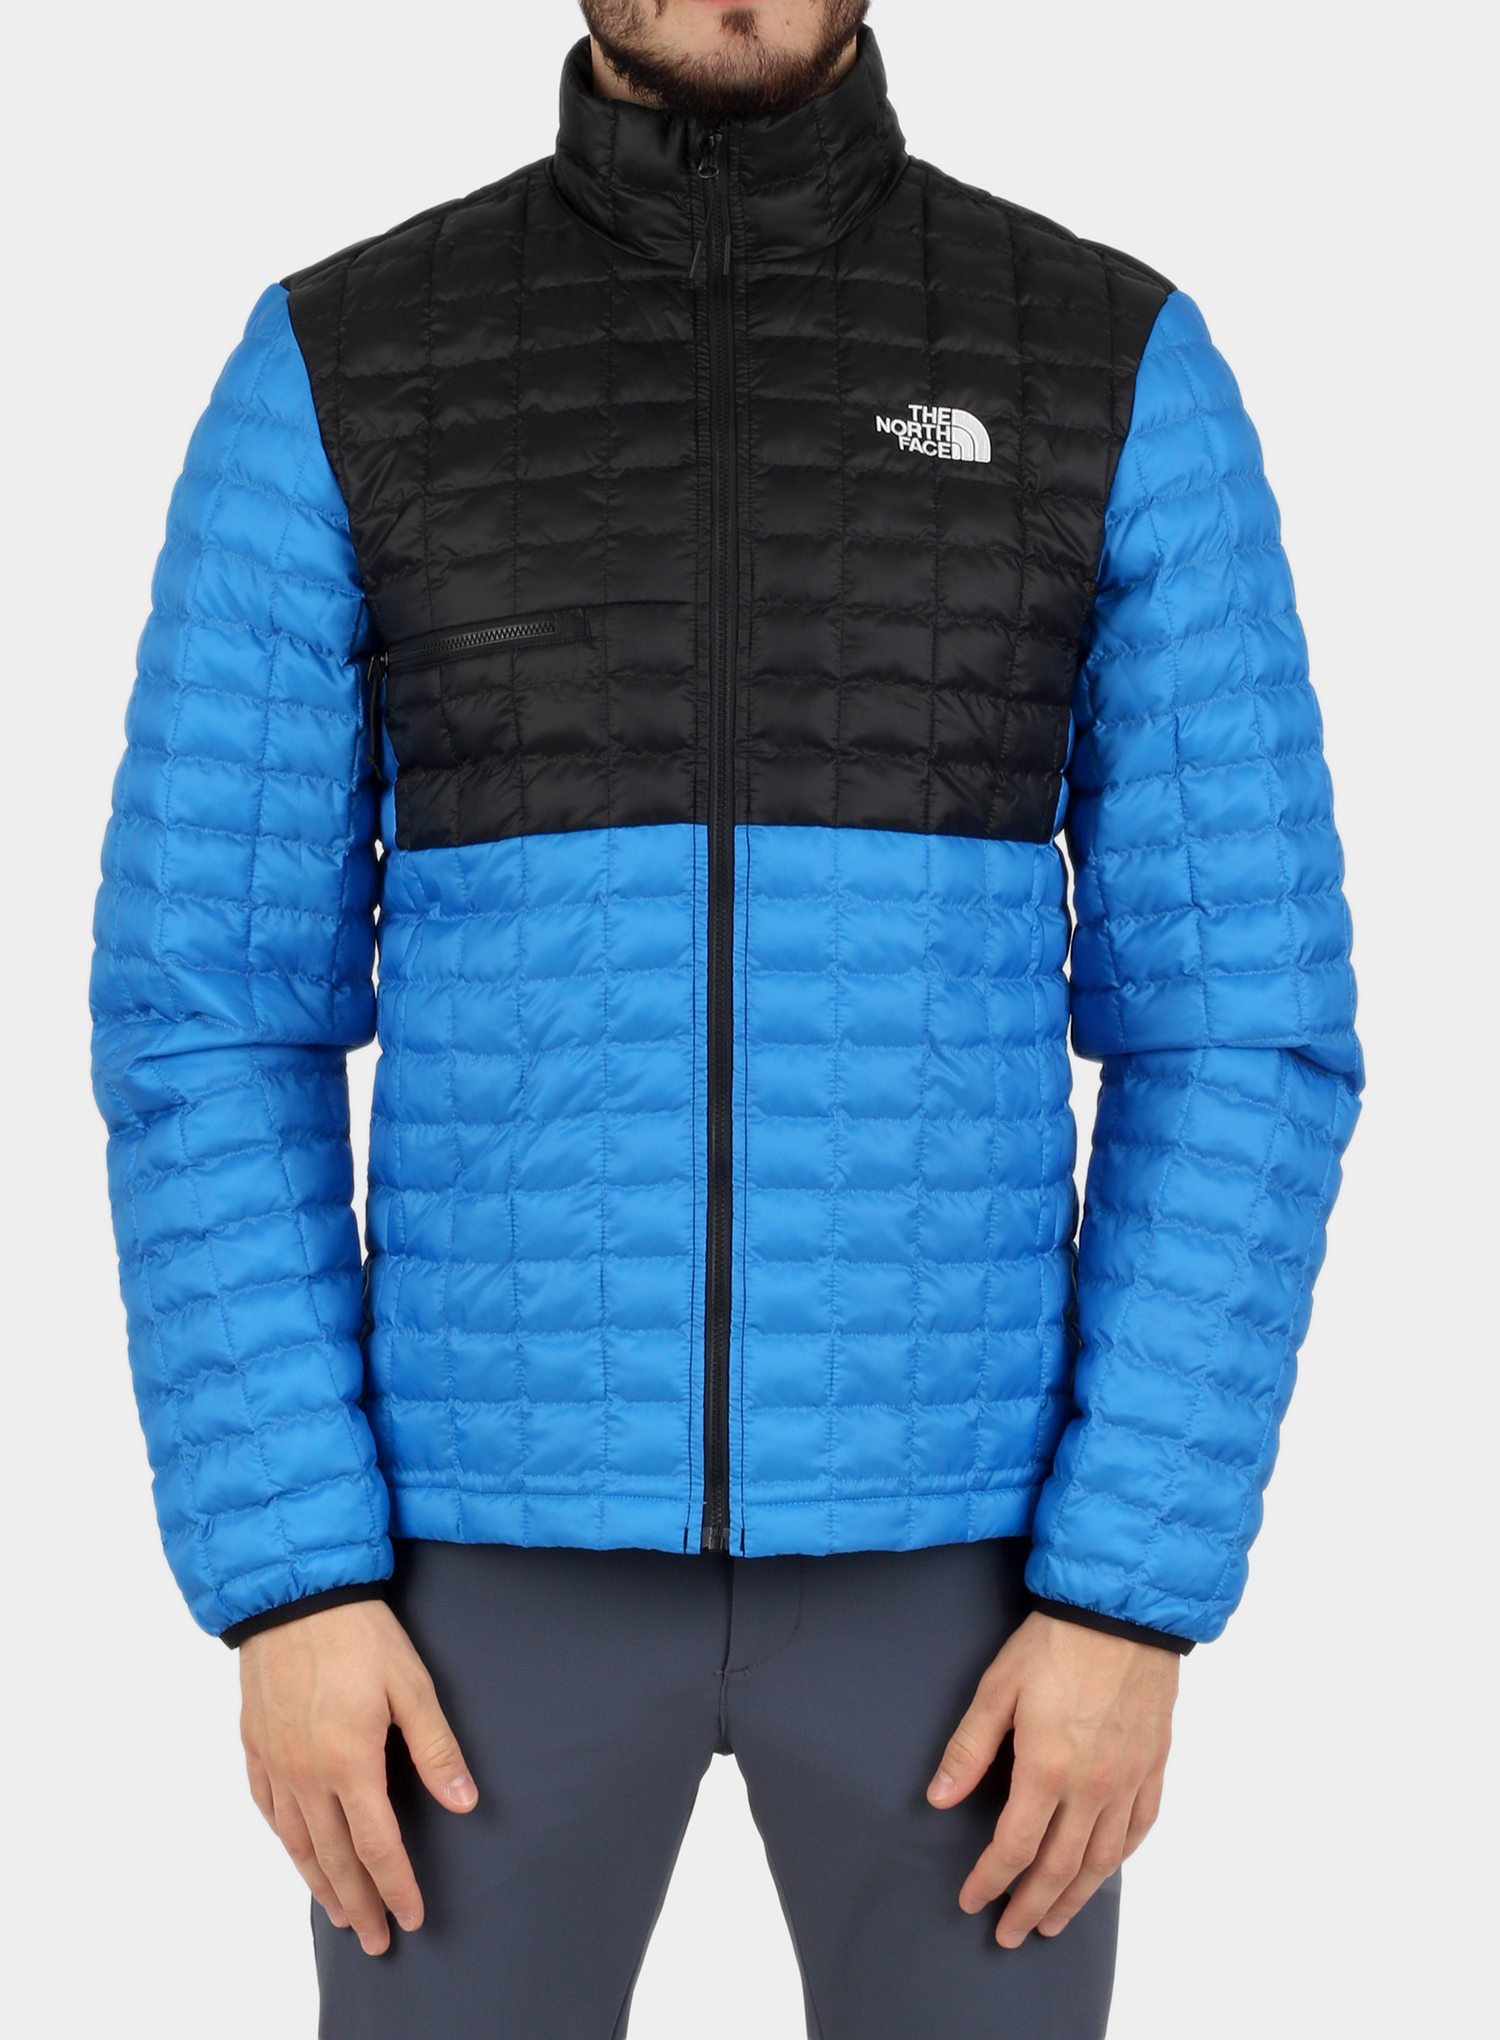 Kurtka The North Face ThermoBall Eco Active Jacket - l.blue/blk - zdjęcie nr. 1